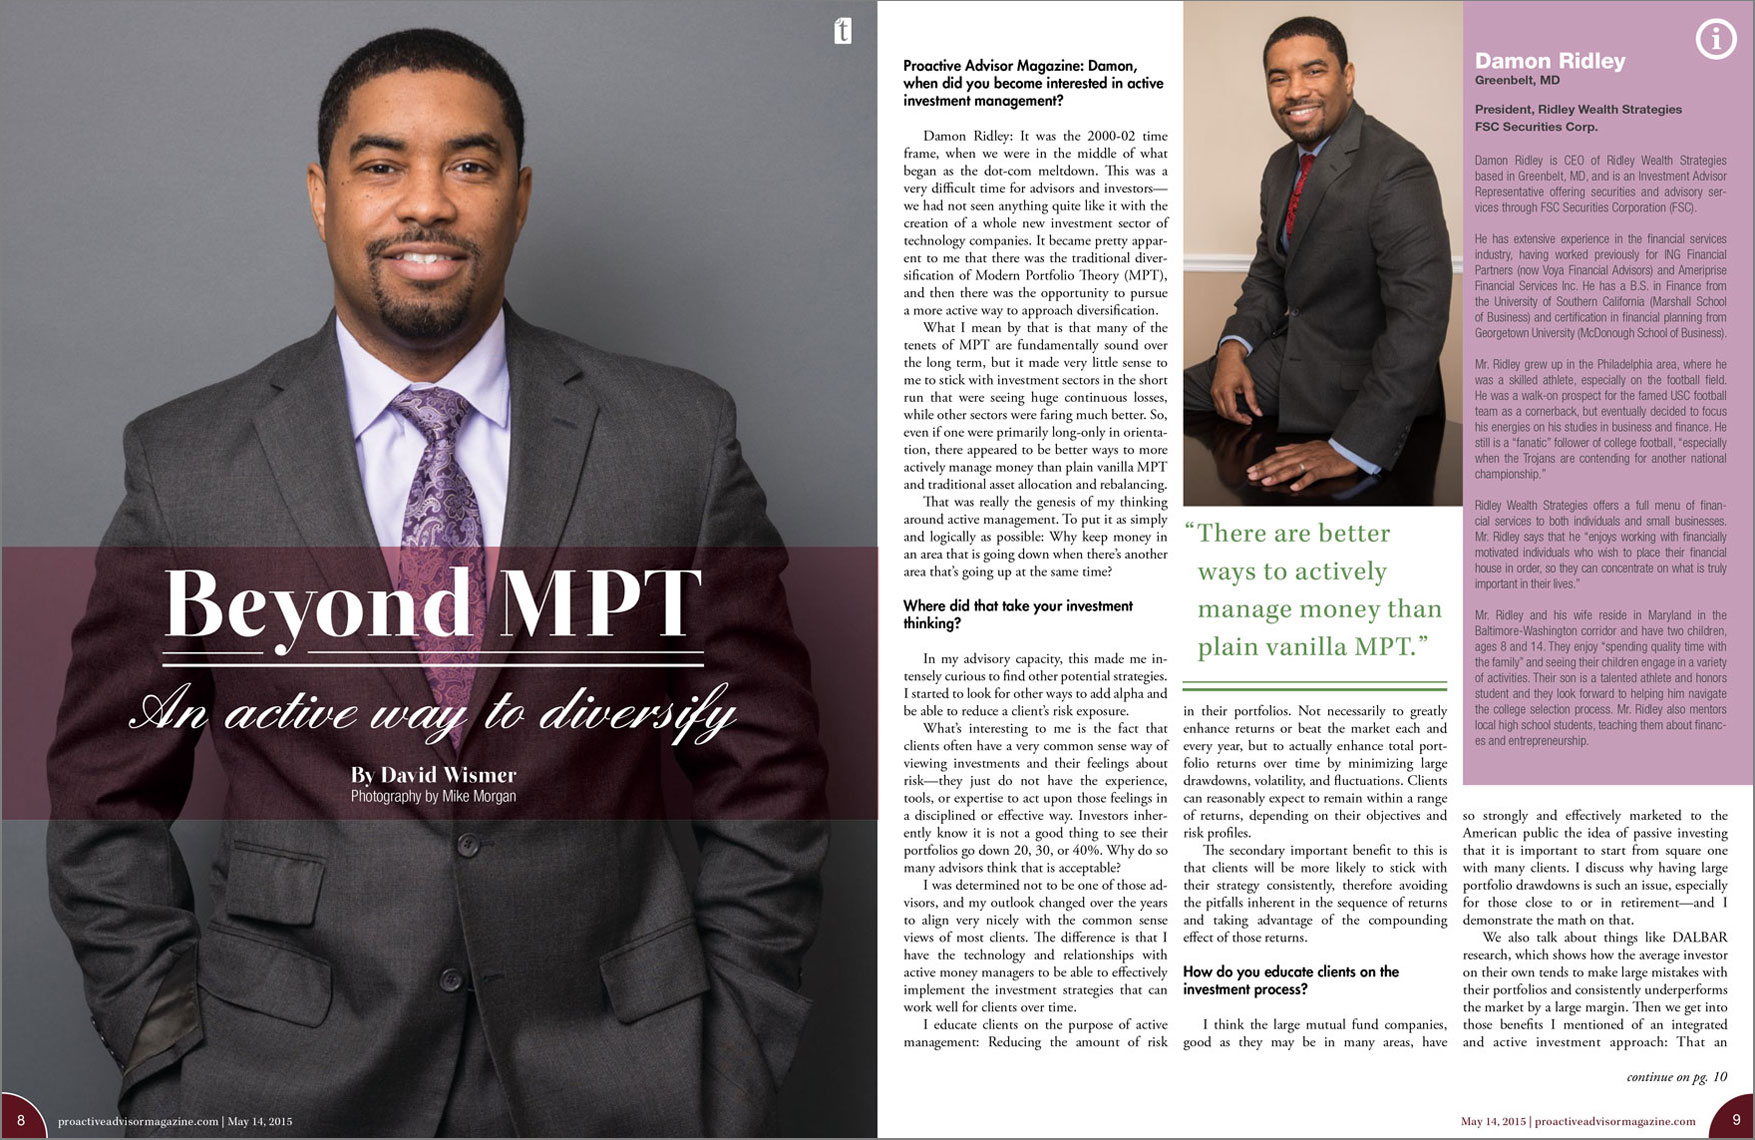 Proactive Advisor Magazine spread featuring Damon Ridley